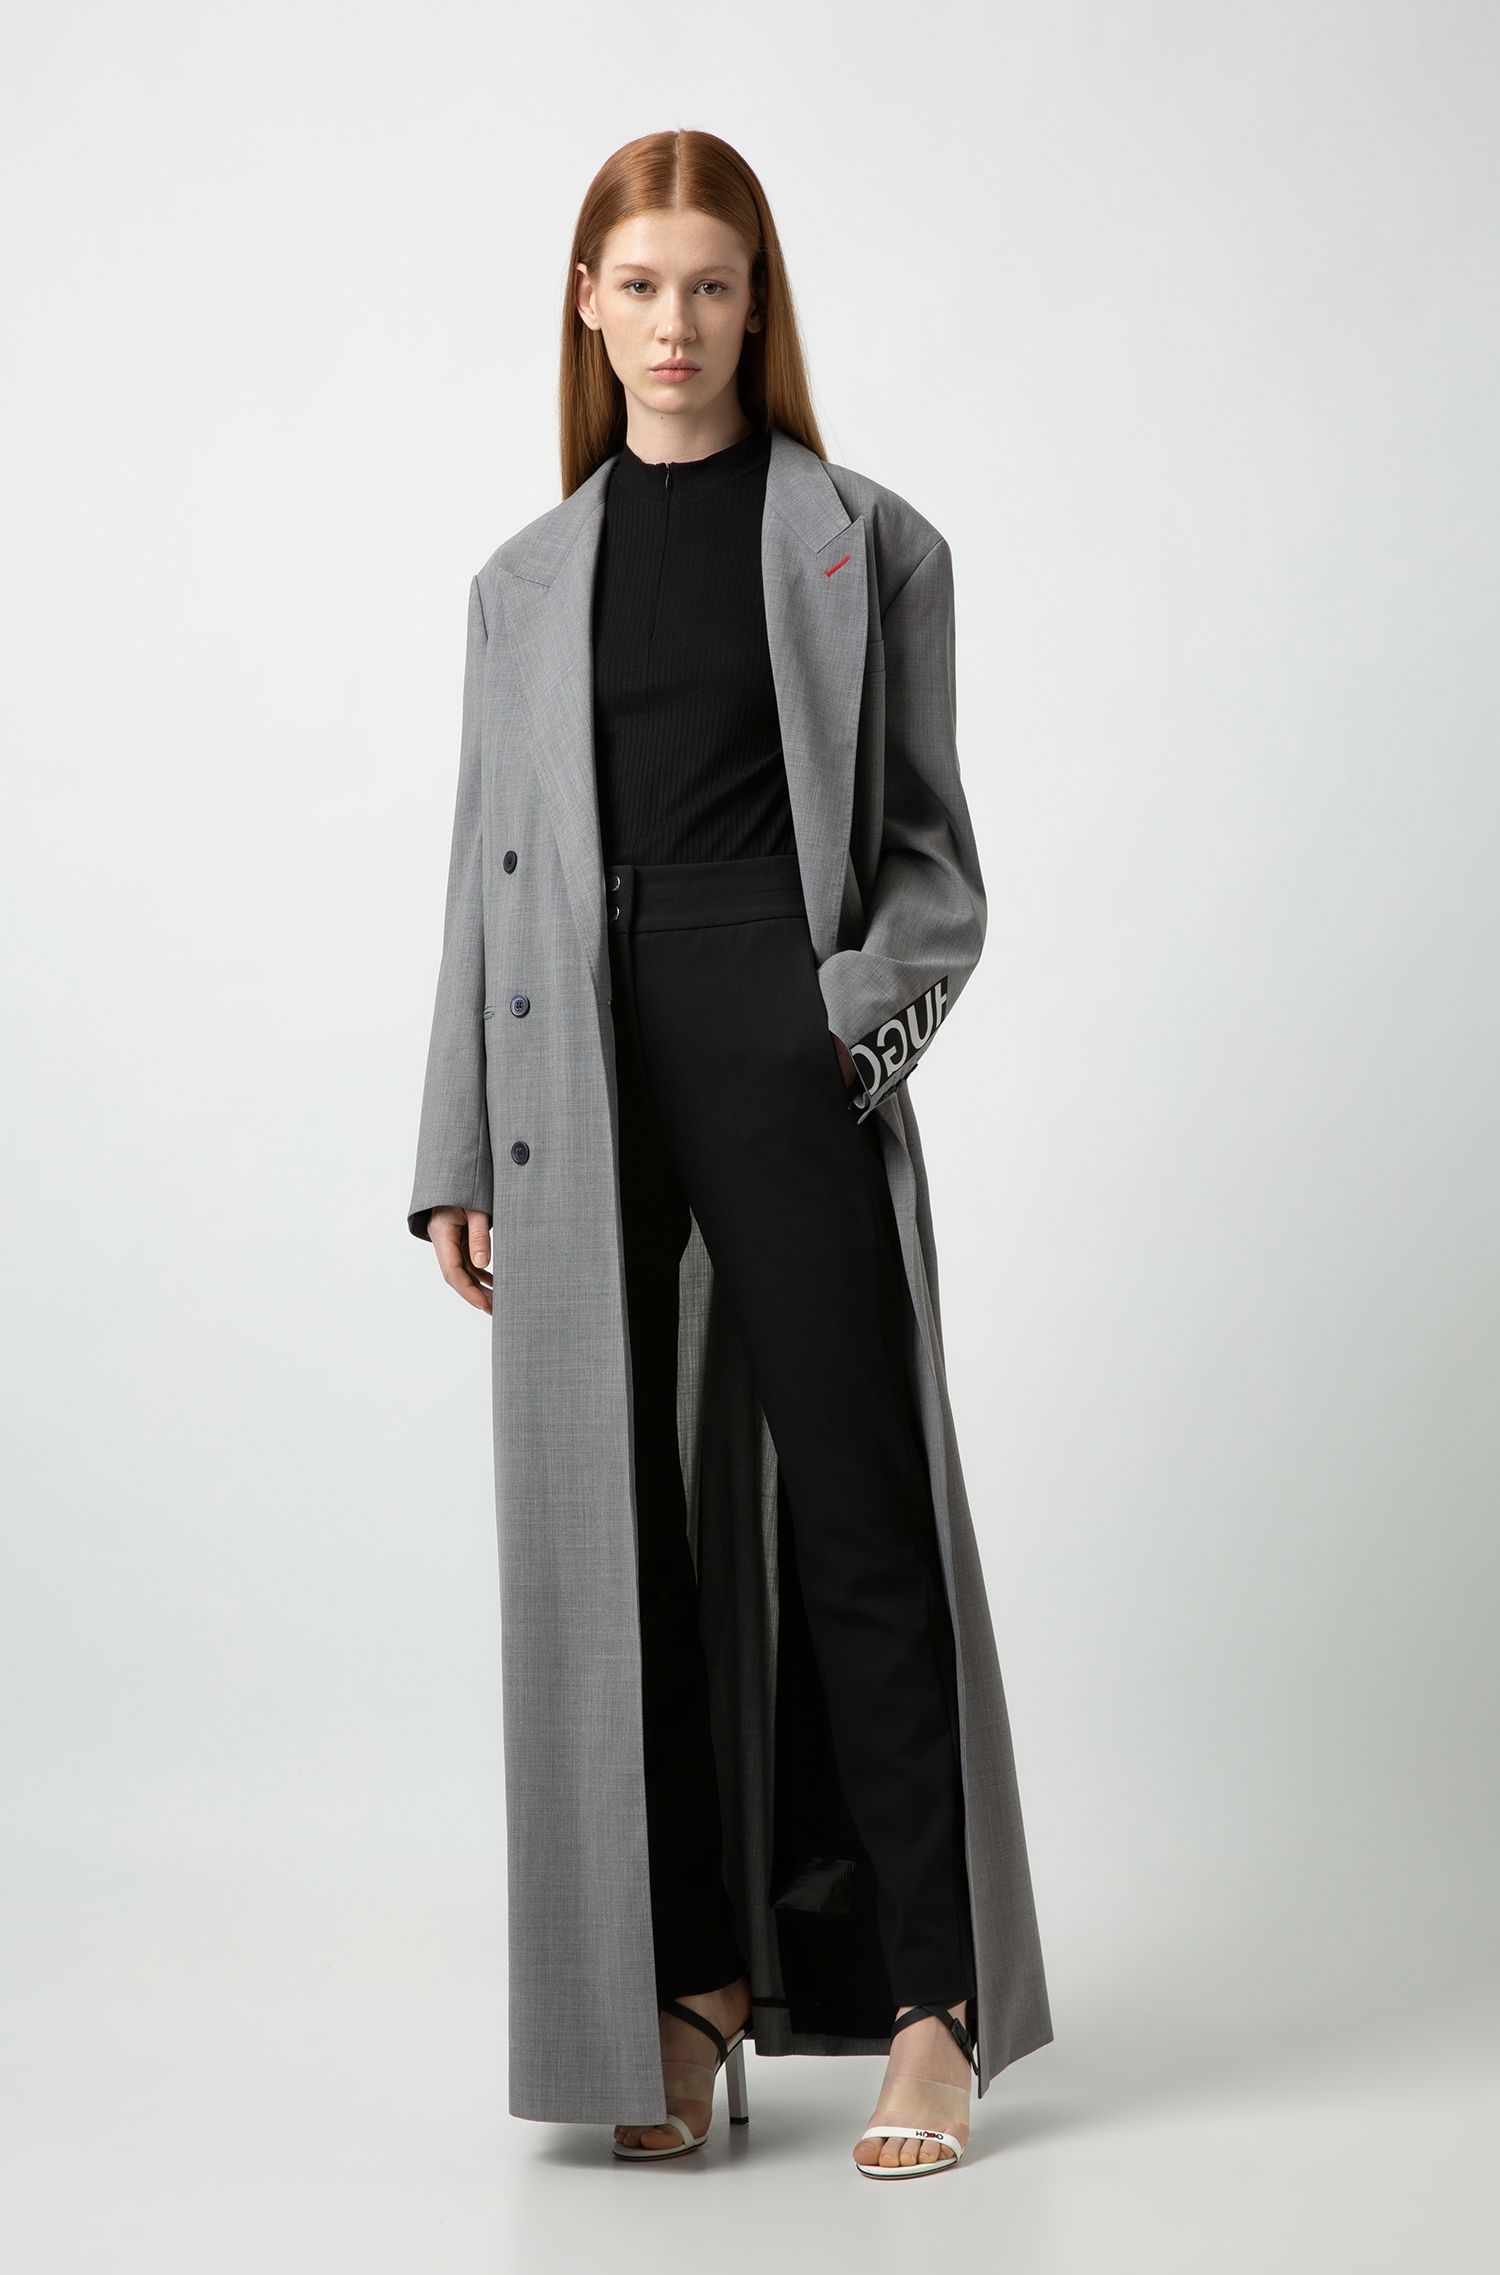 Fashion Show relaxed-fit double-breasted coat with waist detail, Silver